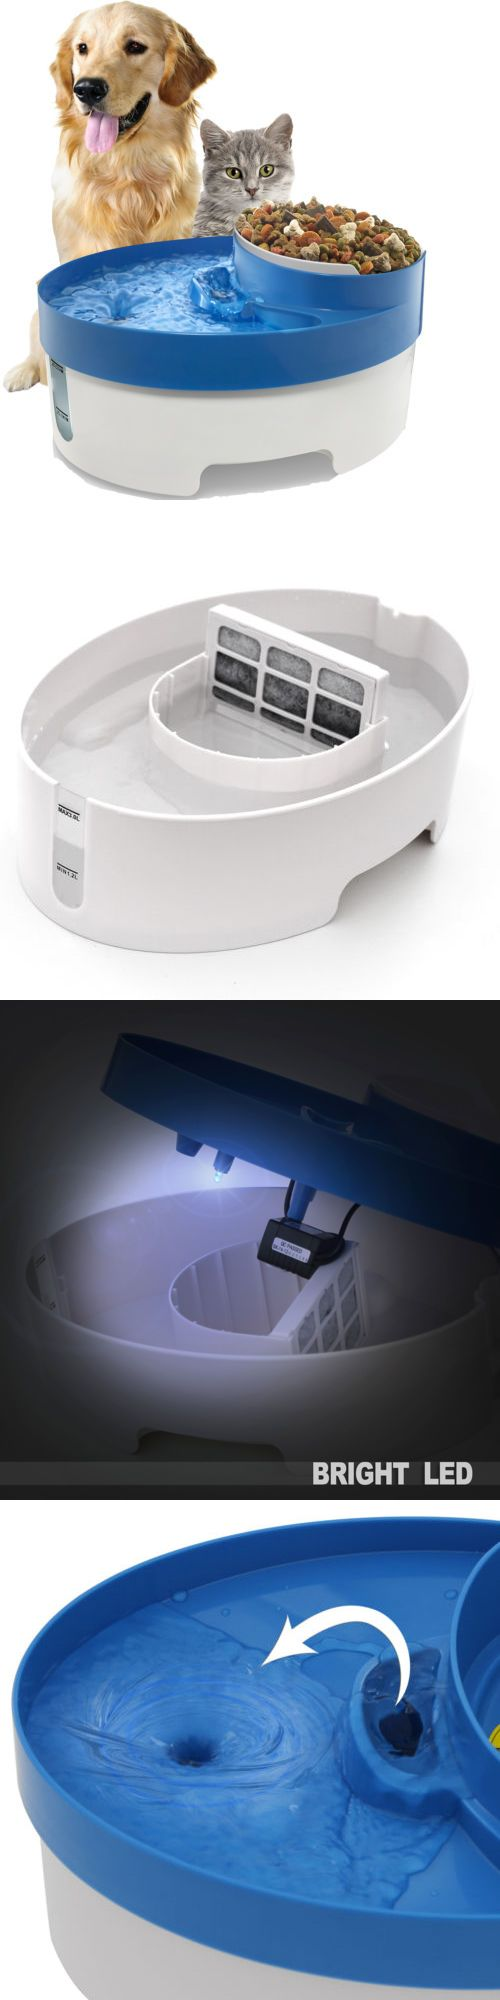 Cute Animals And Animals Stuff: Pet Water Fountain For Cat Dog Automatic Food Bowl Dish Feeder Dispenser 3 In 1 -> BUY IT NOW ONLY: $16.95 on eBay!